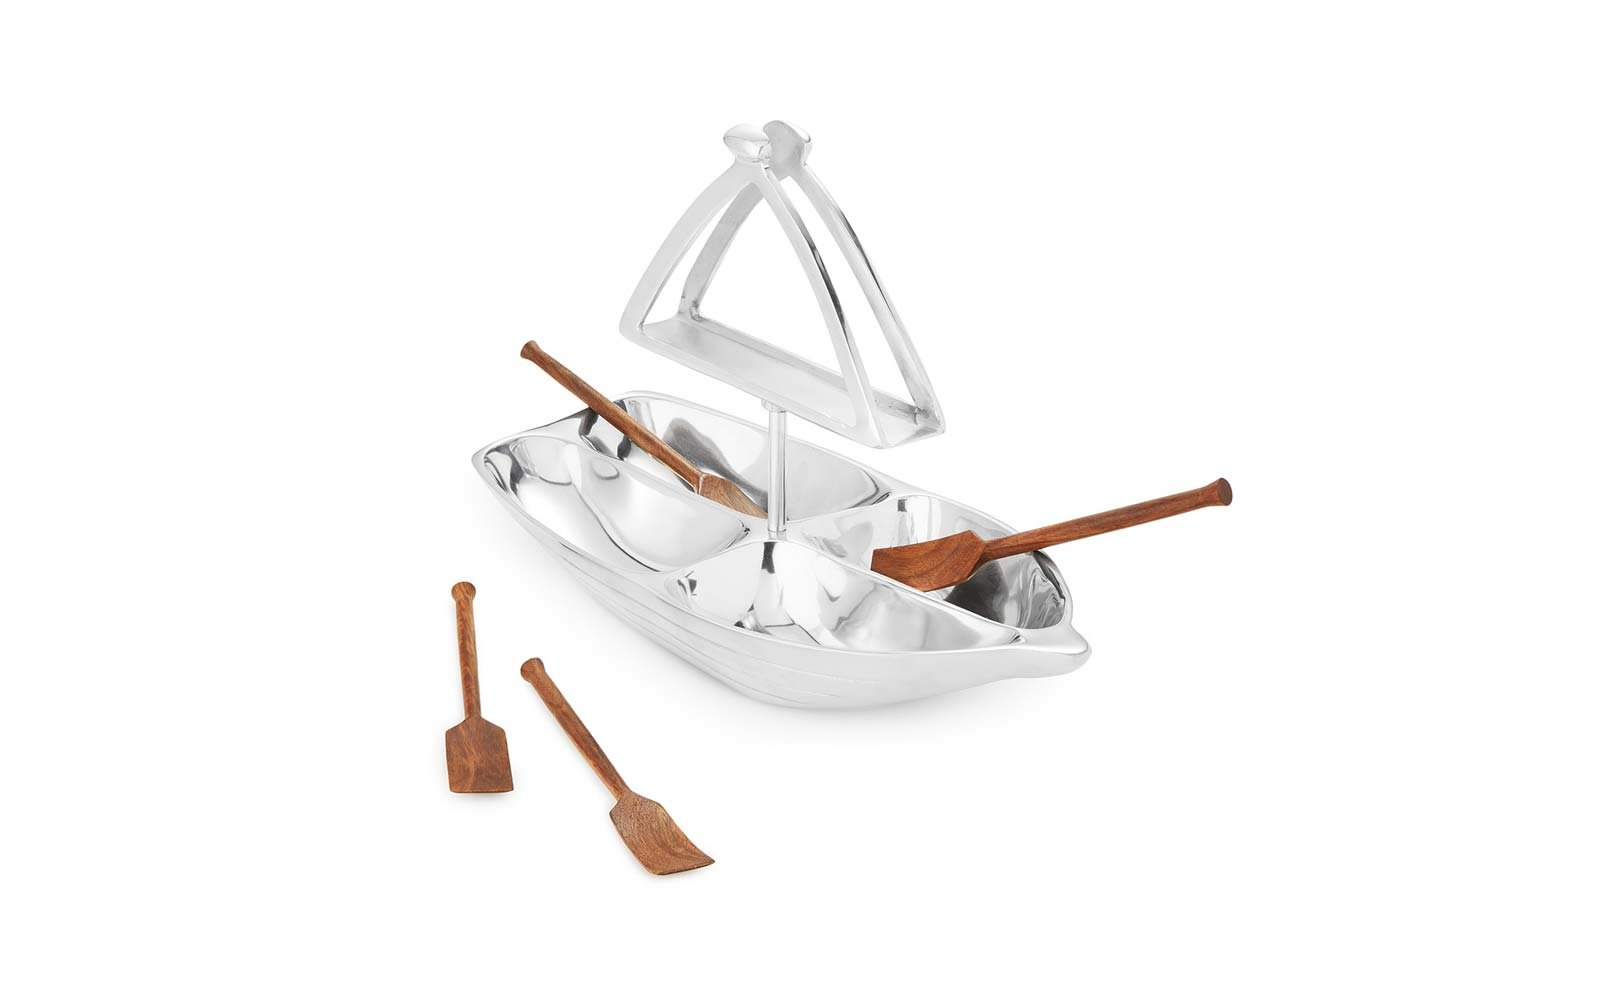 Rowboat Serving Boat with Napkin Holder